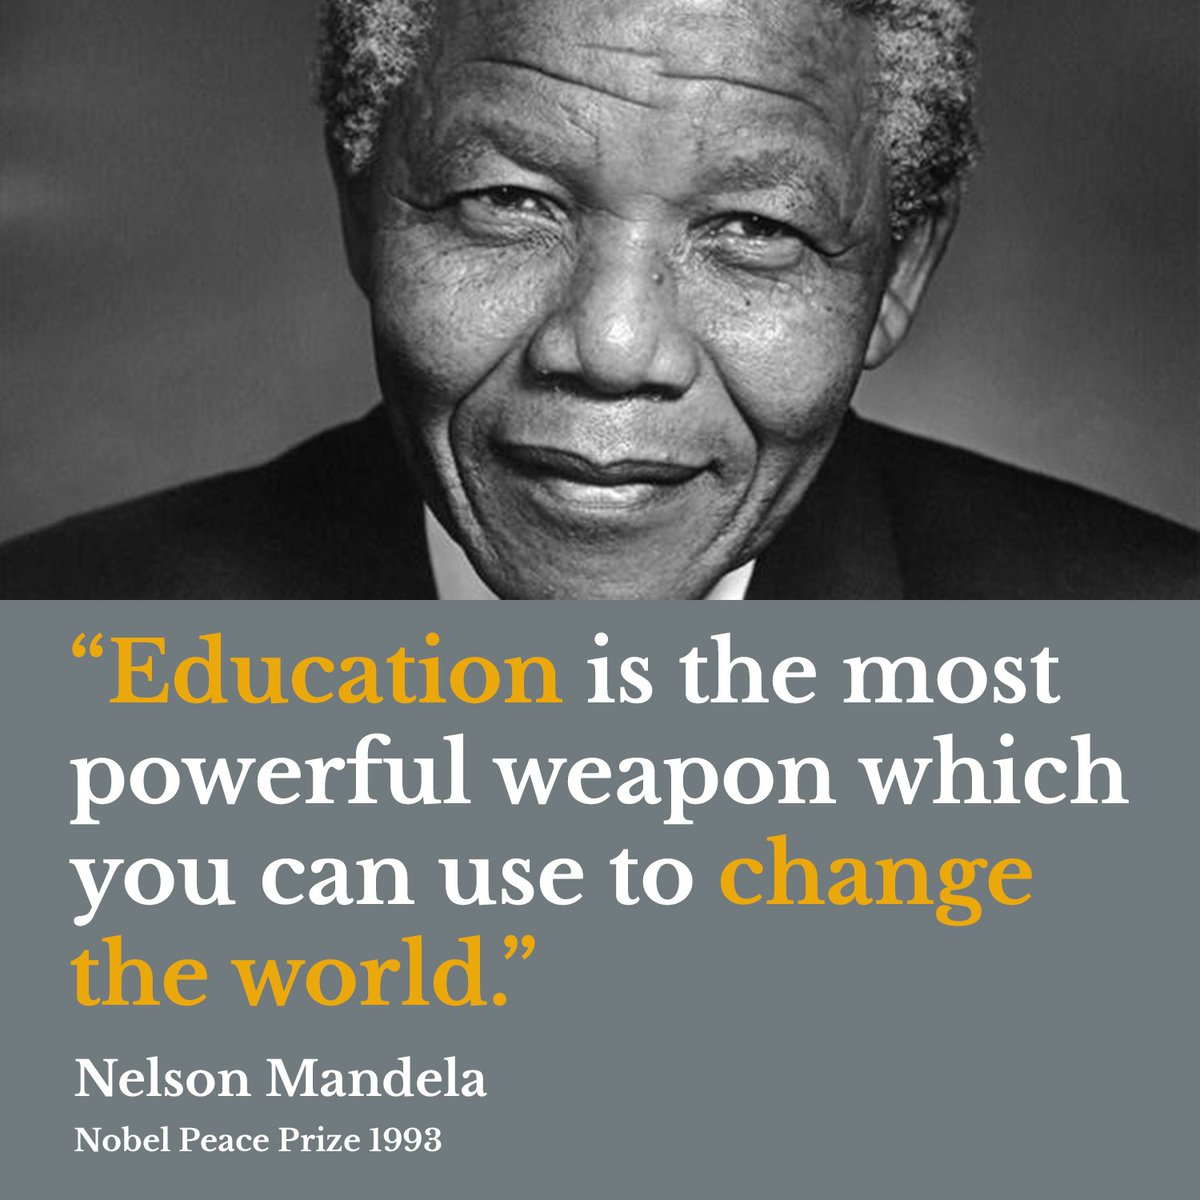 We remember a wise man, Nelson Mandela, on what would have been his 100th birthday.  #Mandela100 #MandelaDay